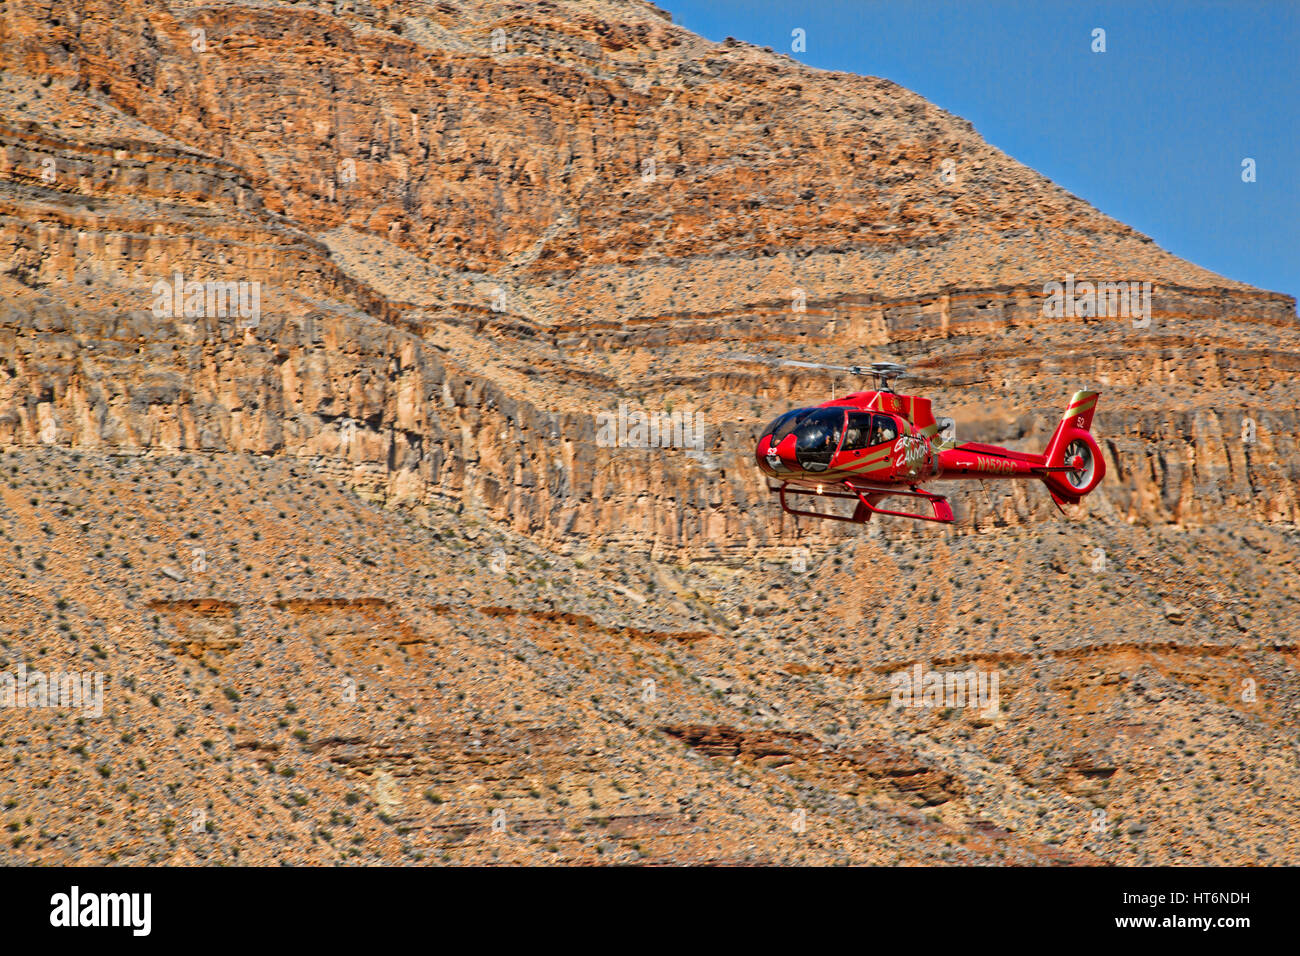 Helicopter Landing on the Floor of The Grand Ganyon Next to the Colorado River - Stock Image